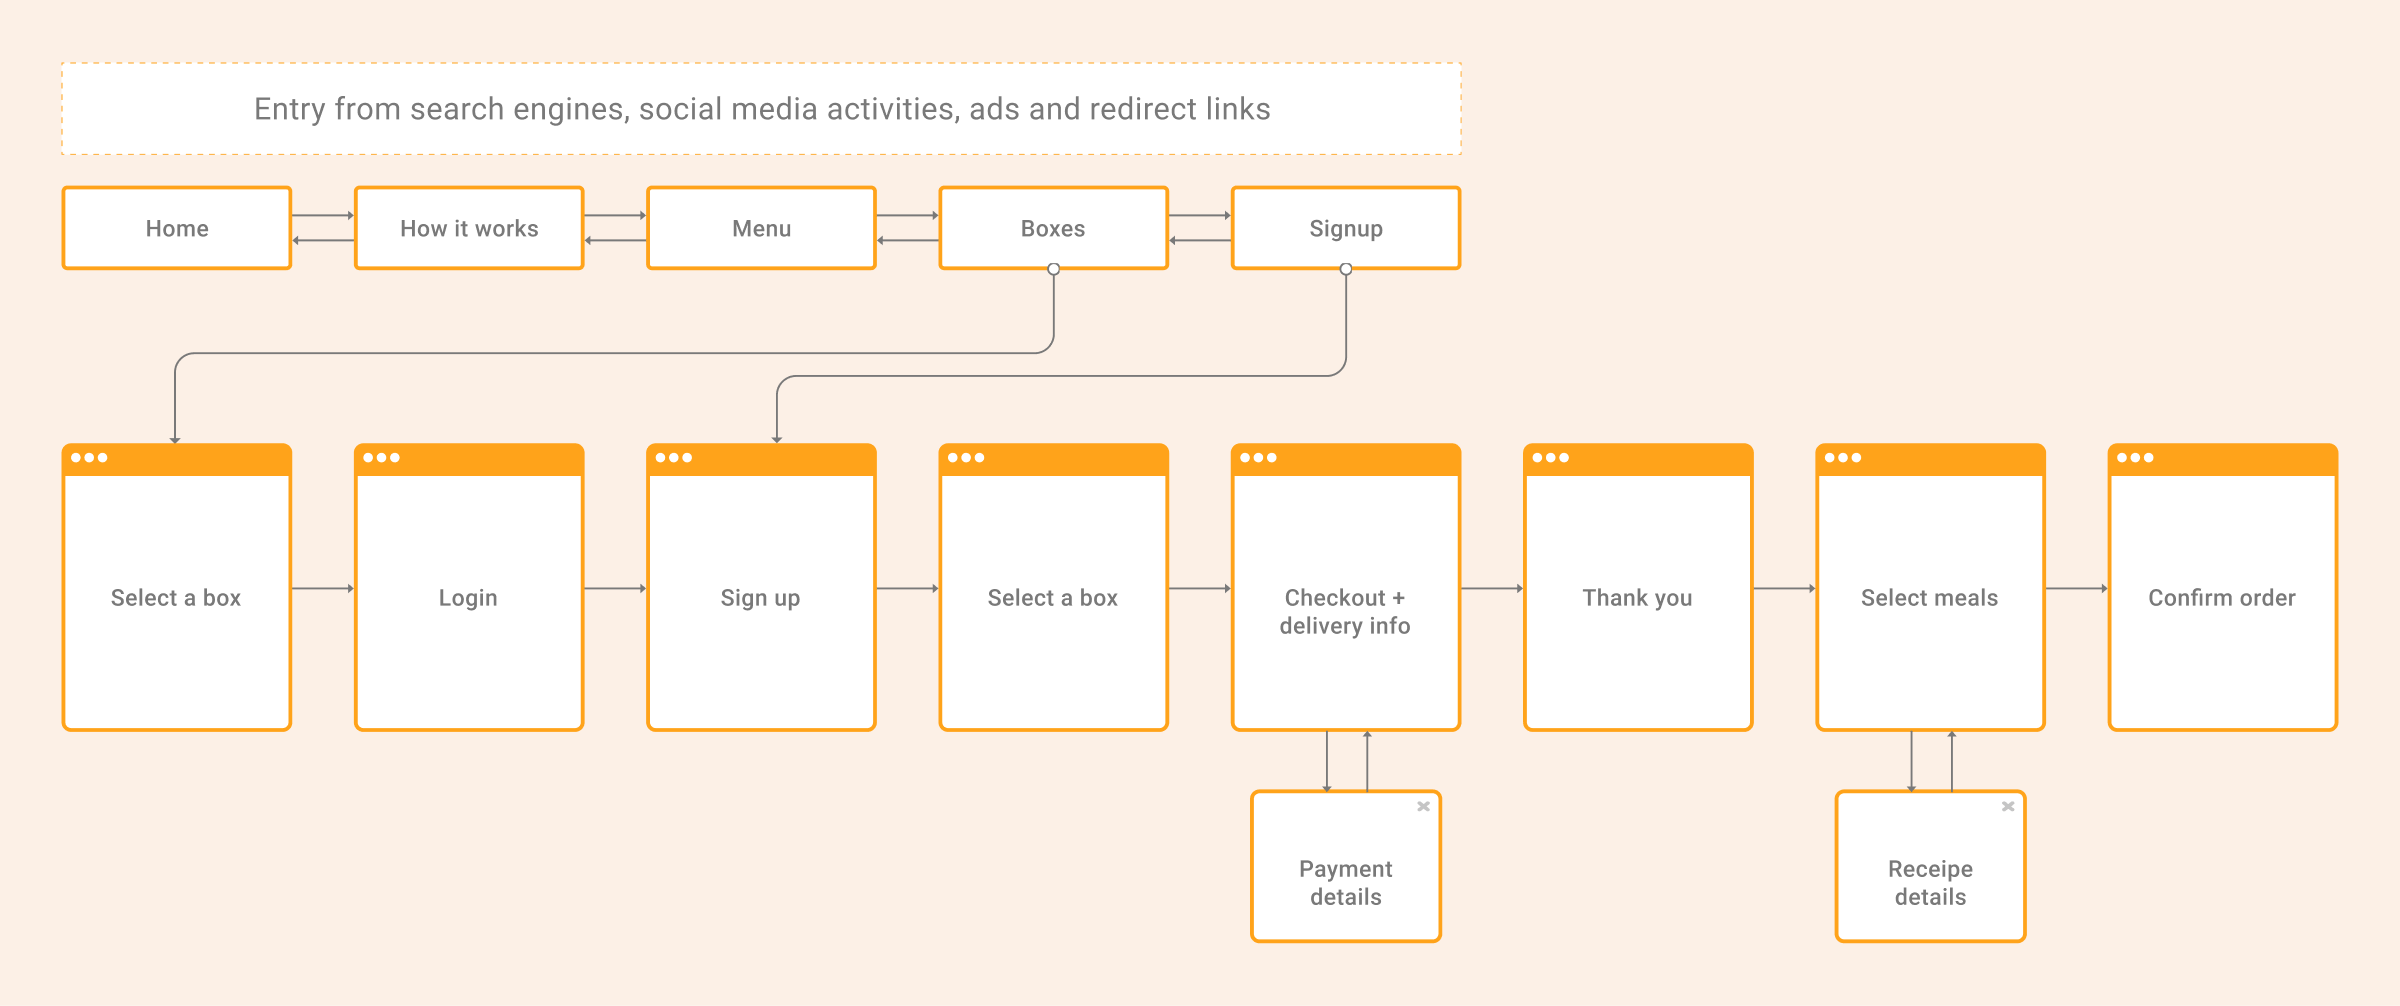 Current signup flow, My Foodie Box